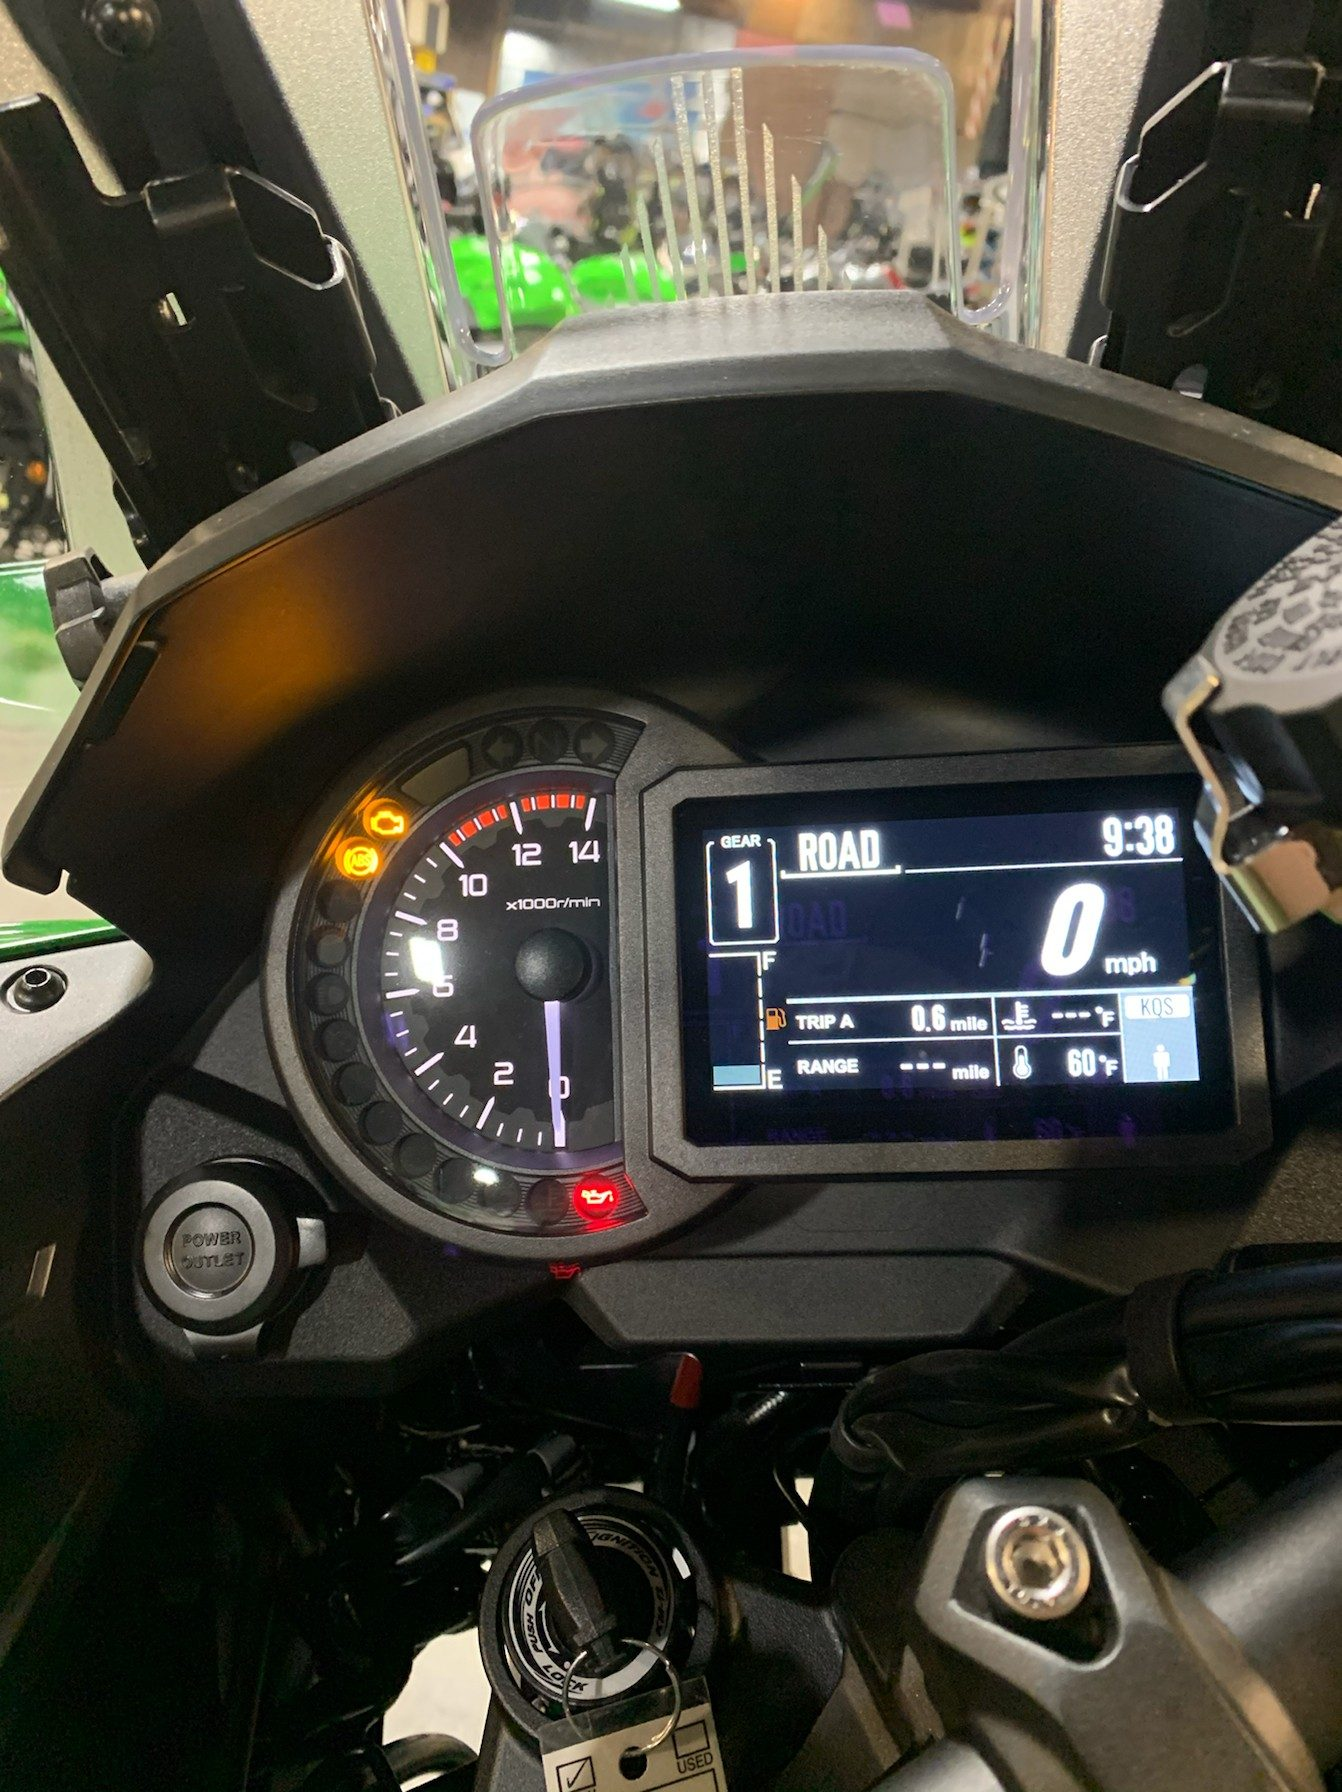 2020 Kawasaki VERSYS 1000 SE LT in Kingsport, Tennessee - Photo 2